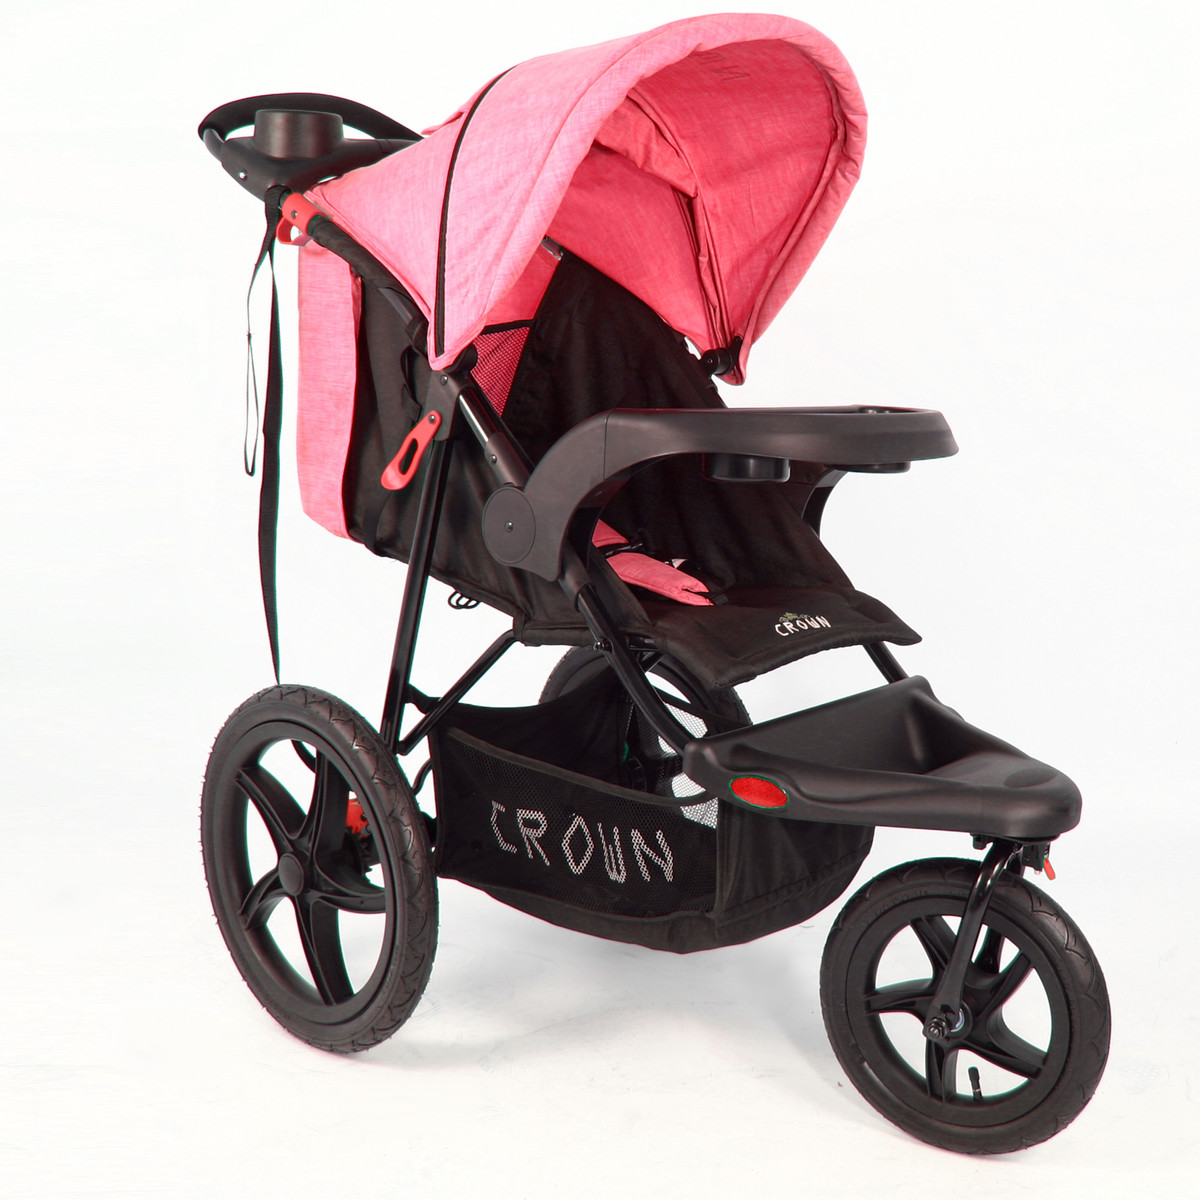 ST920 CROWN Deluxe SportWagen Travel Kinderwagen JOGGER Black-Pink